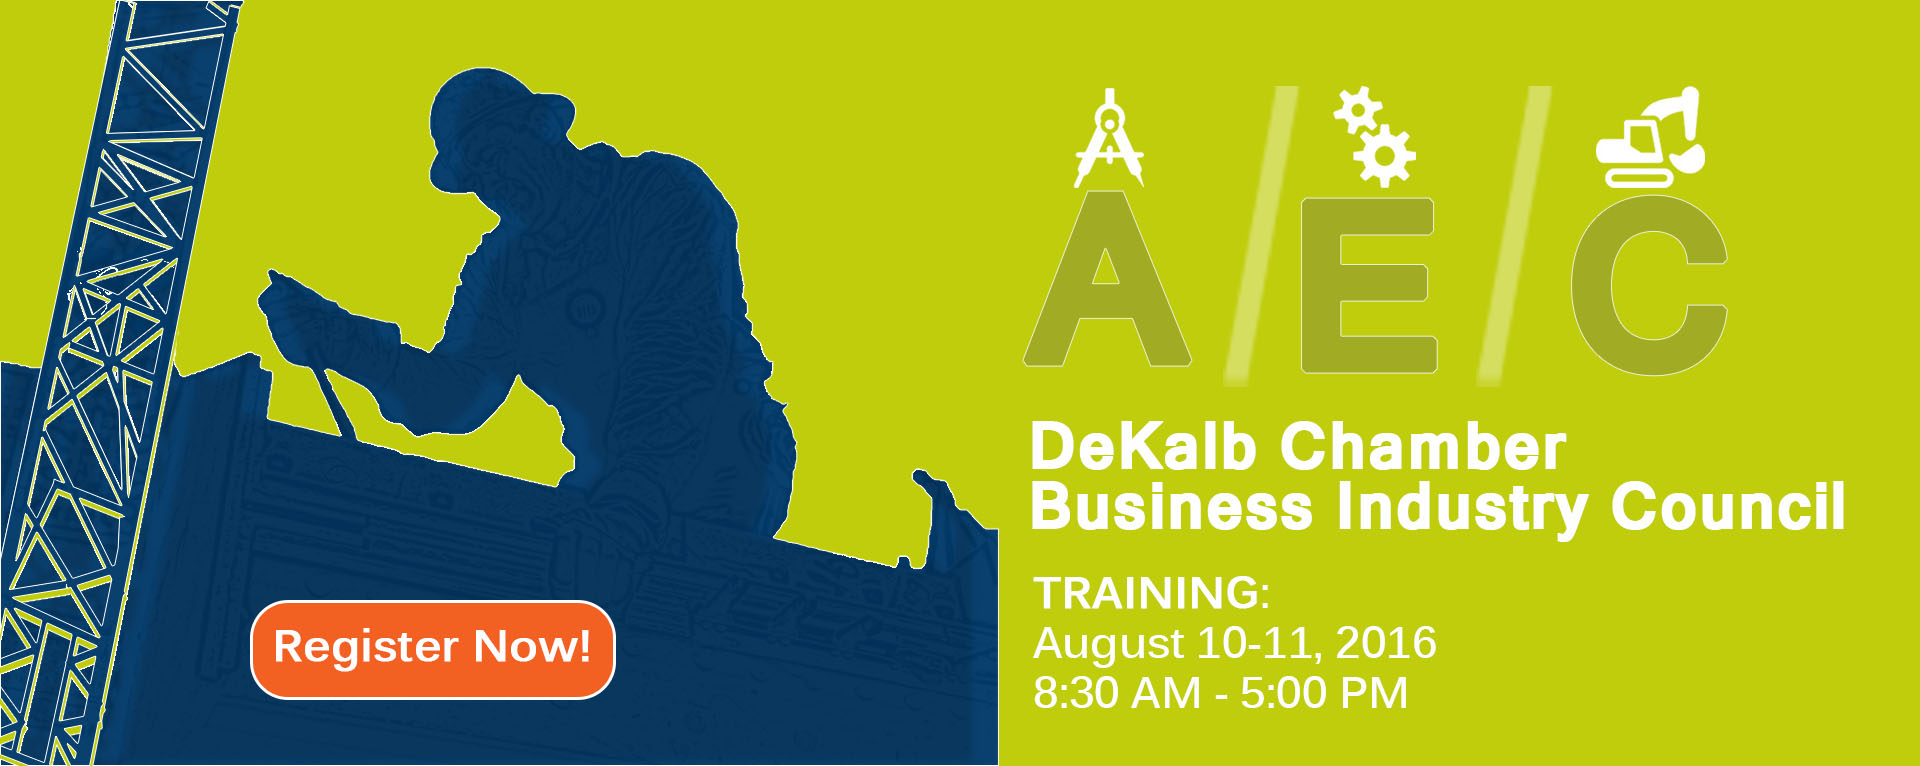 DeKalb Chamber of Commerce Business Industry Council